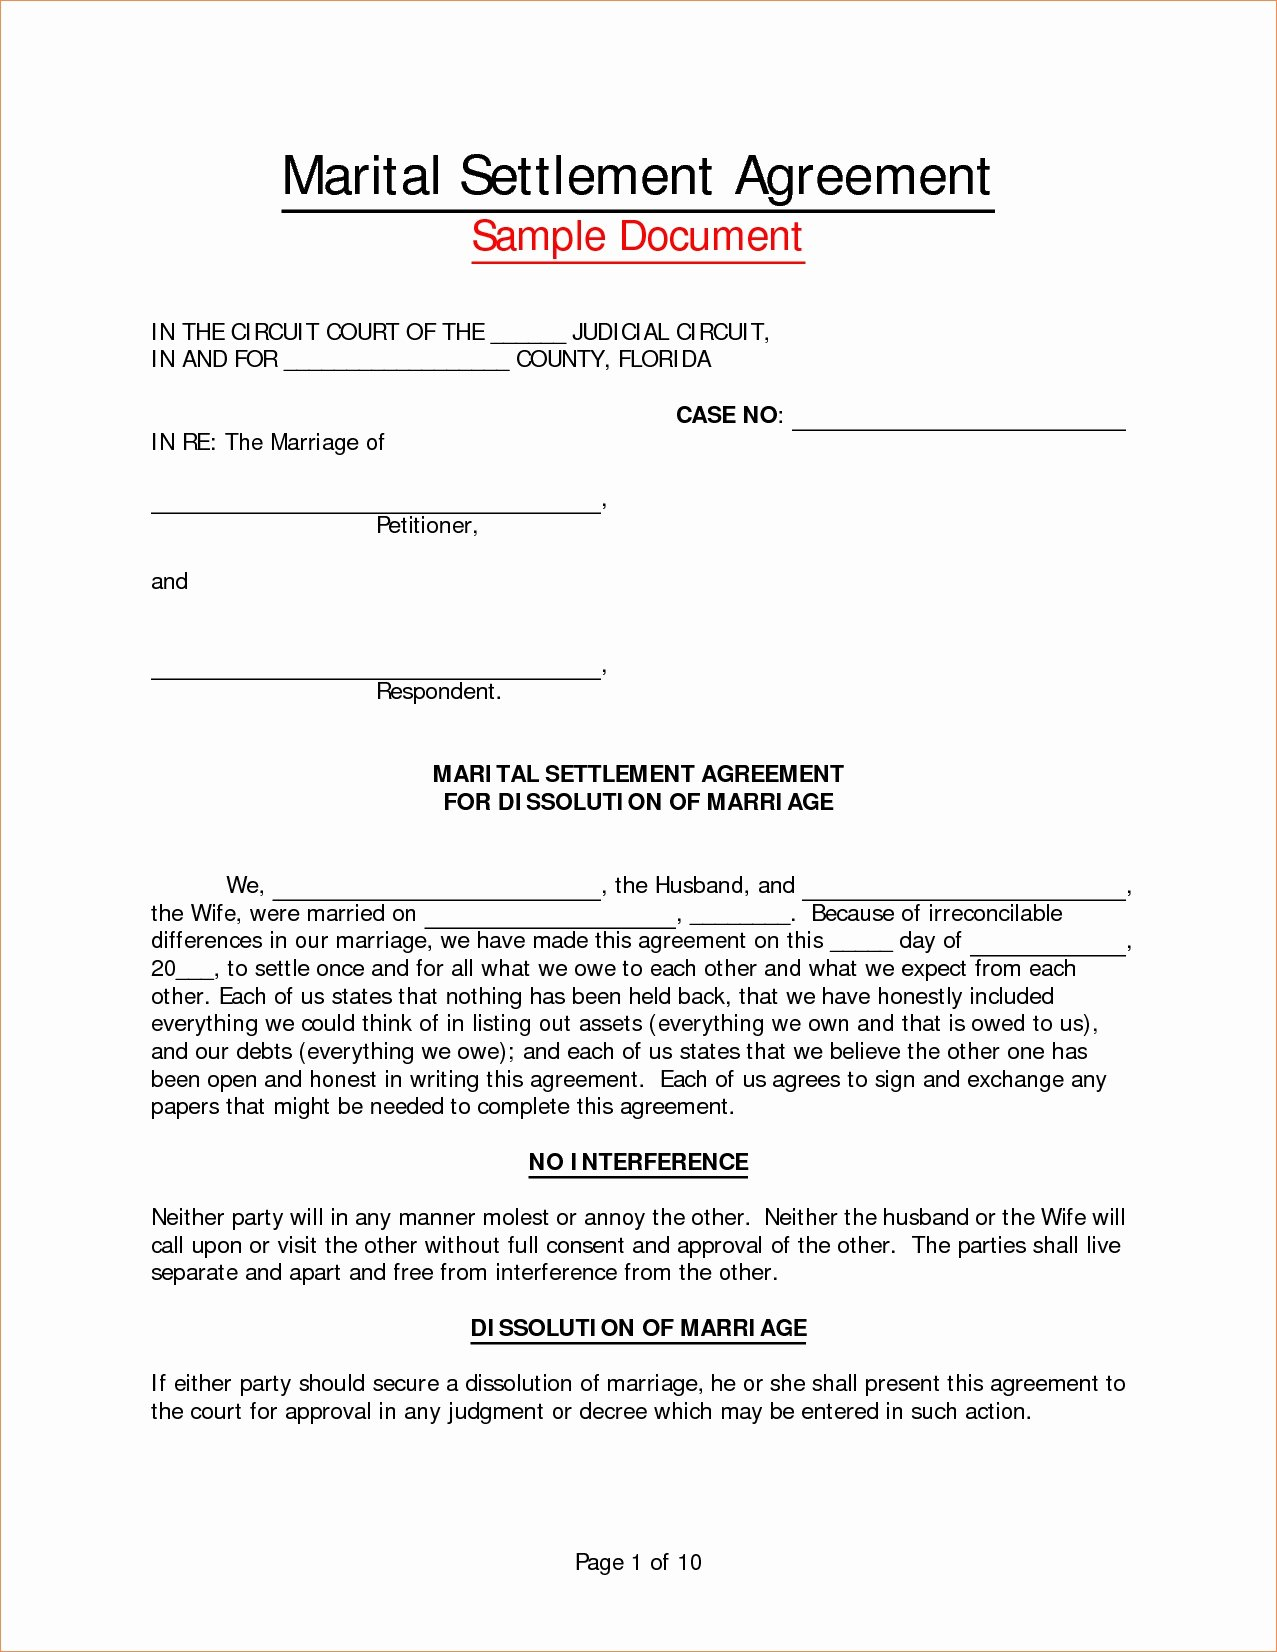 Marriage Settlement Agreement Template New Employee Separation Agreement Template Great 8 Marriage